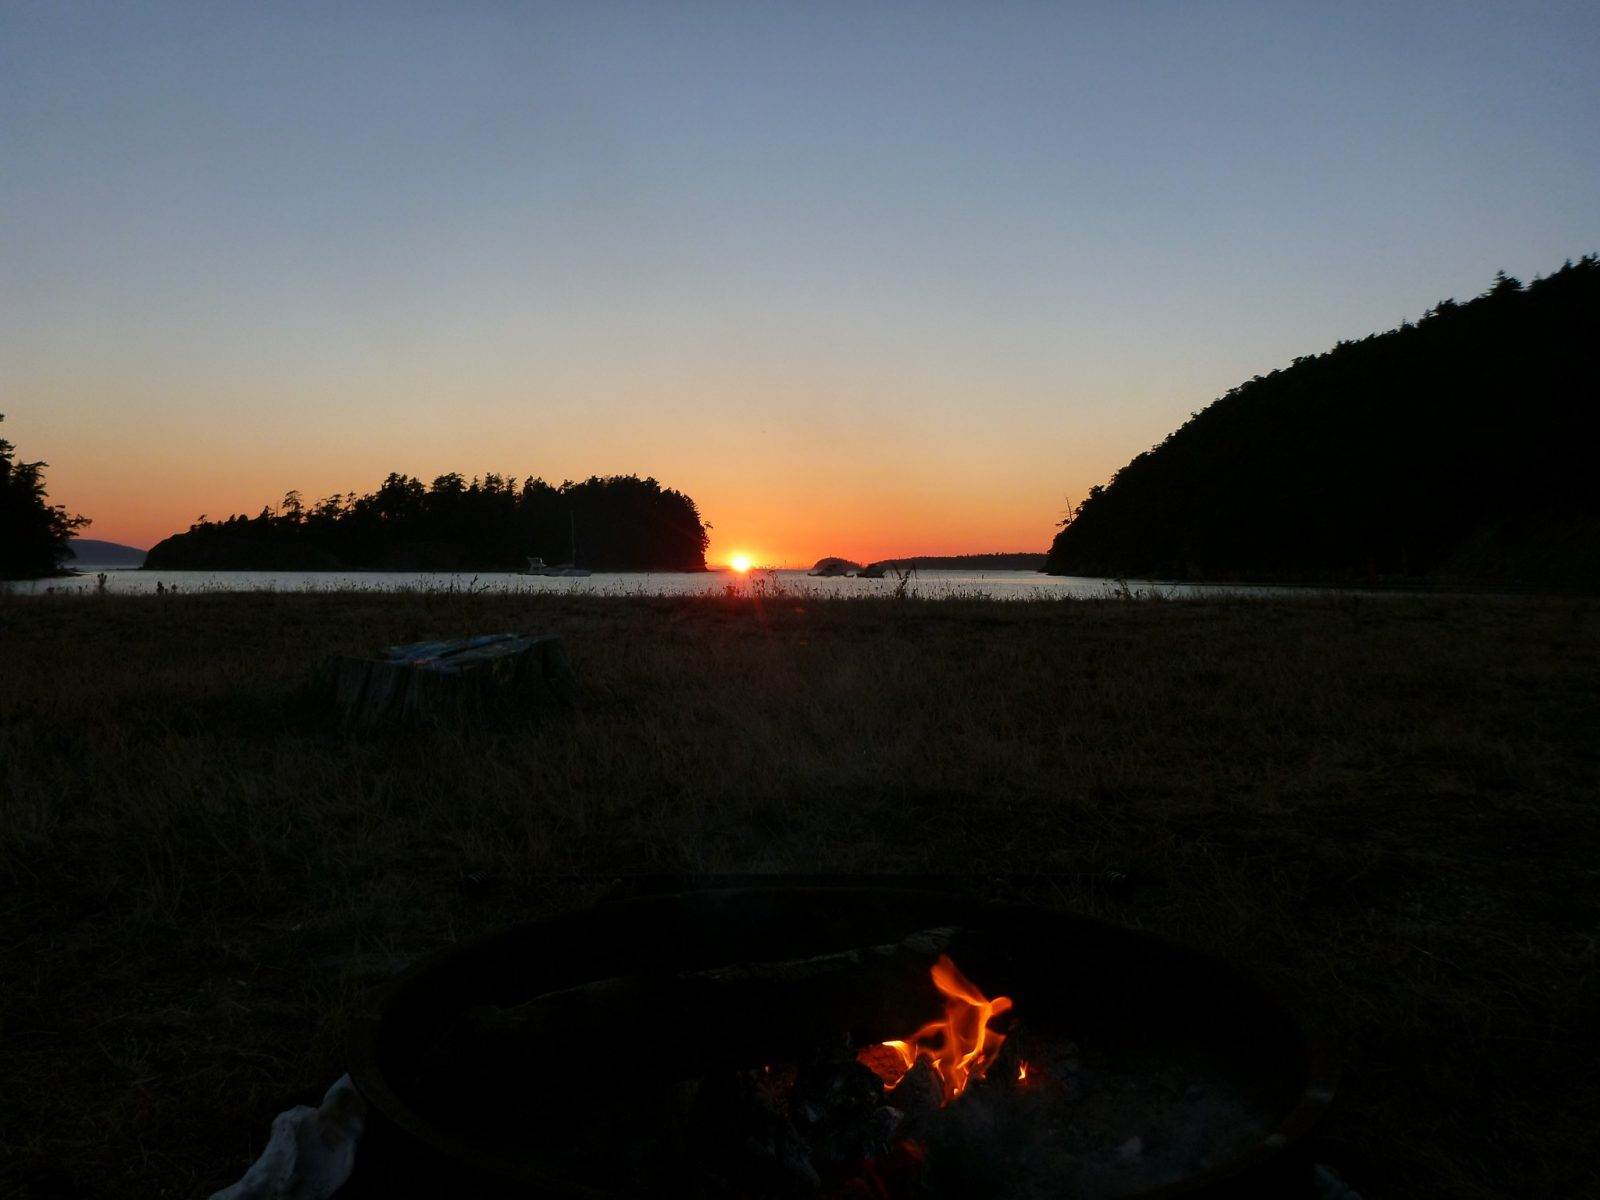 A sunset between distant islands and a campfire in the foreground, camping in the san juan islands